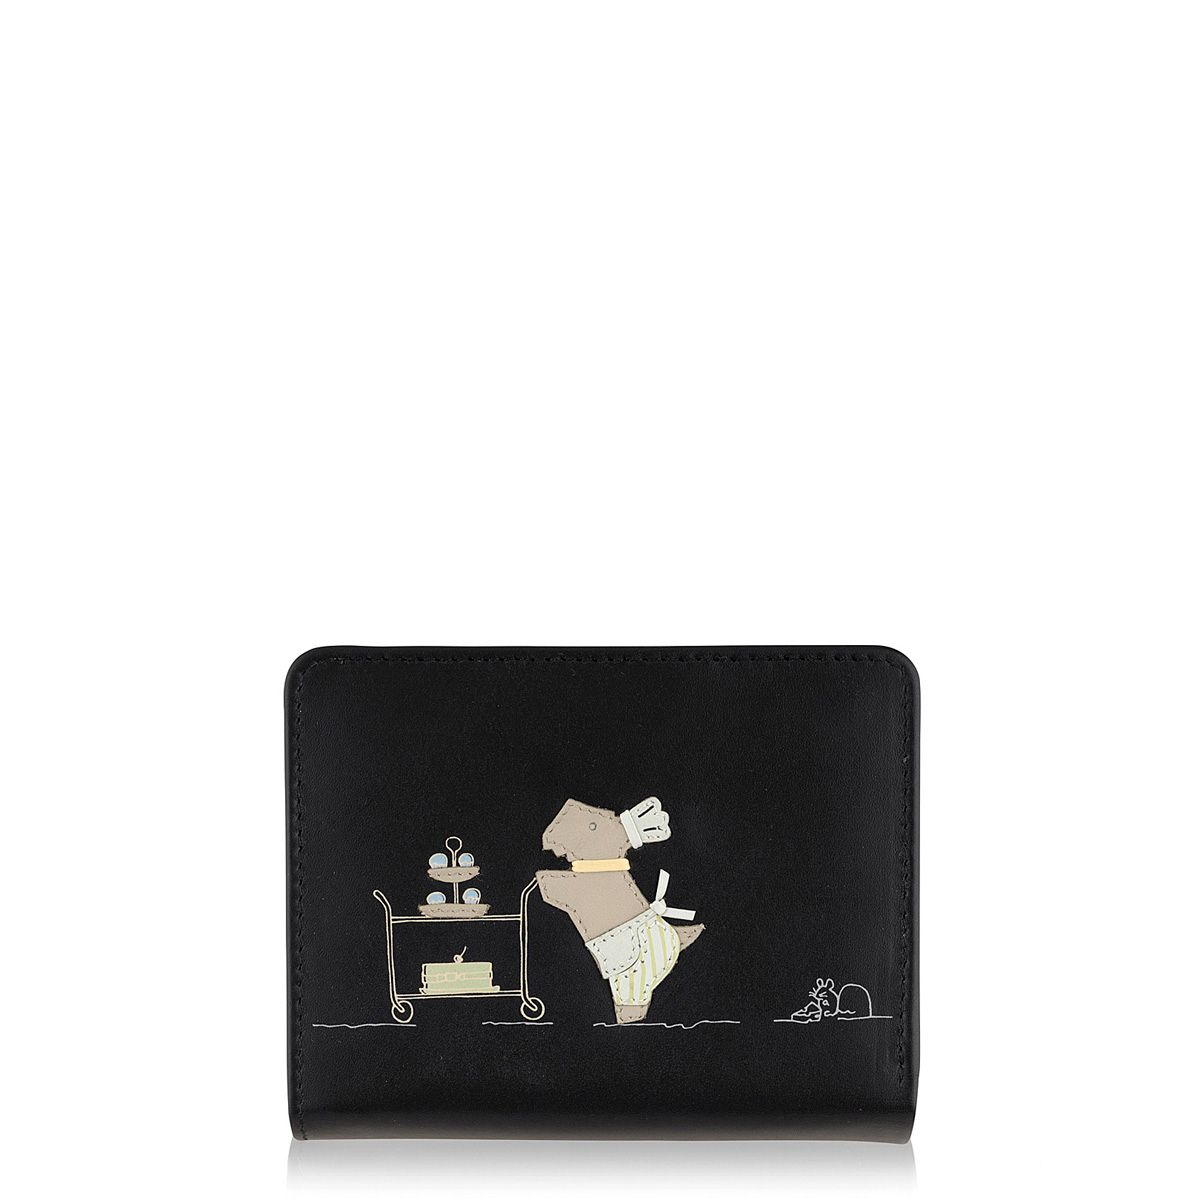 Patisserie Raderlie medium black flapover purse